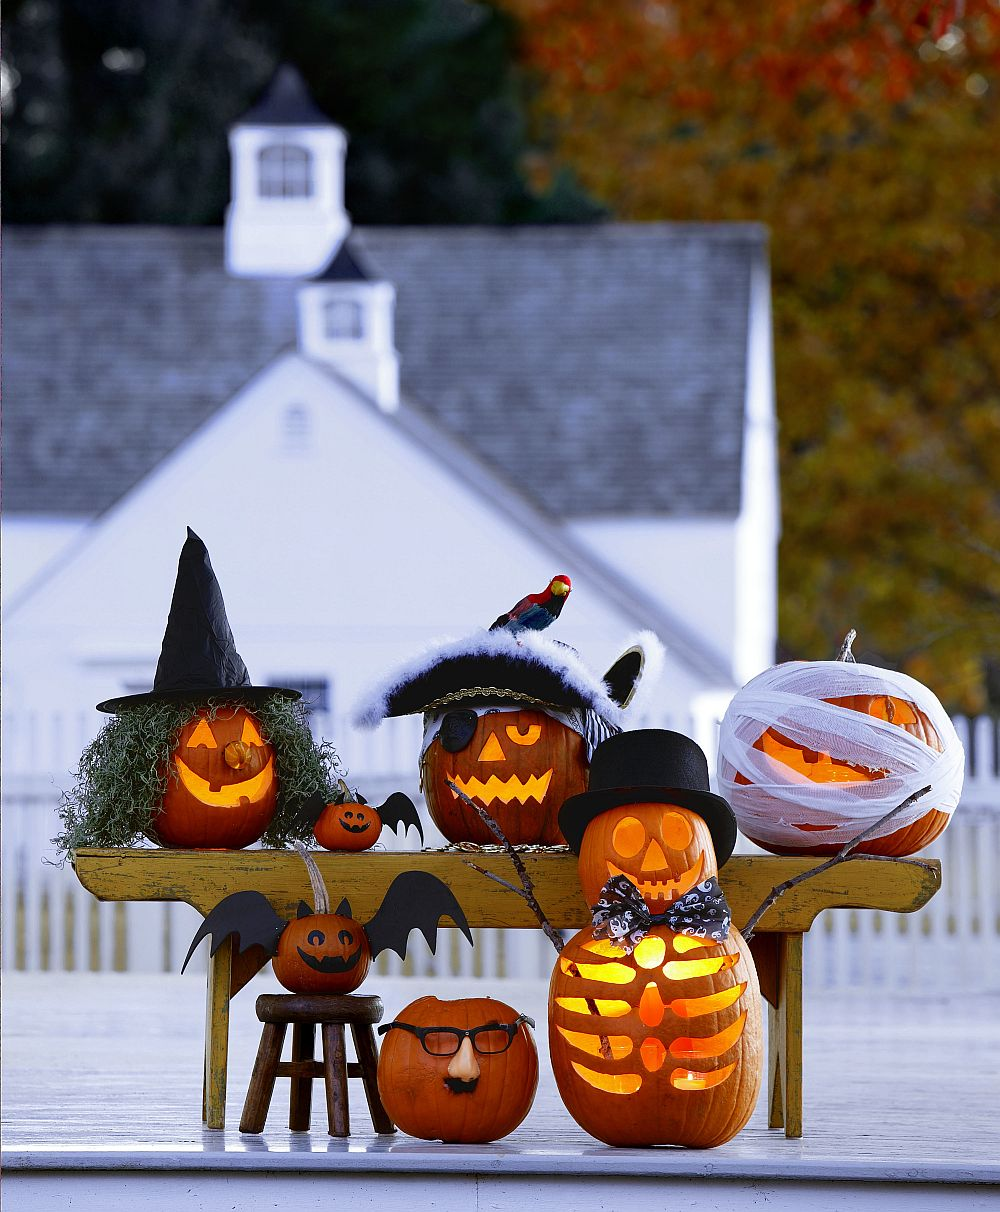 Pumpkin carving and jack-o-lanterns can help create the perfect Halloween in no time at all!